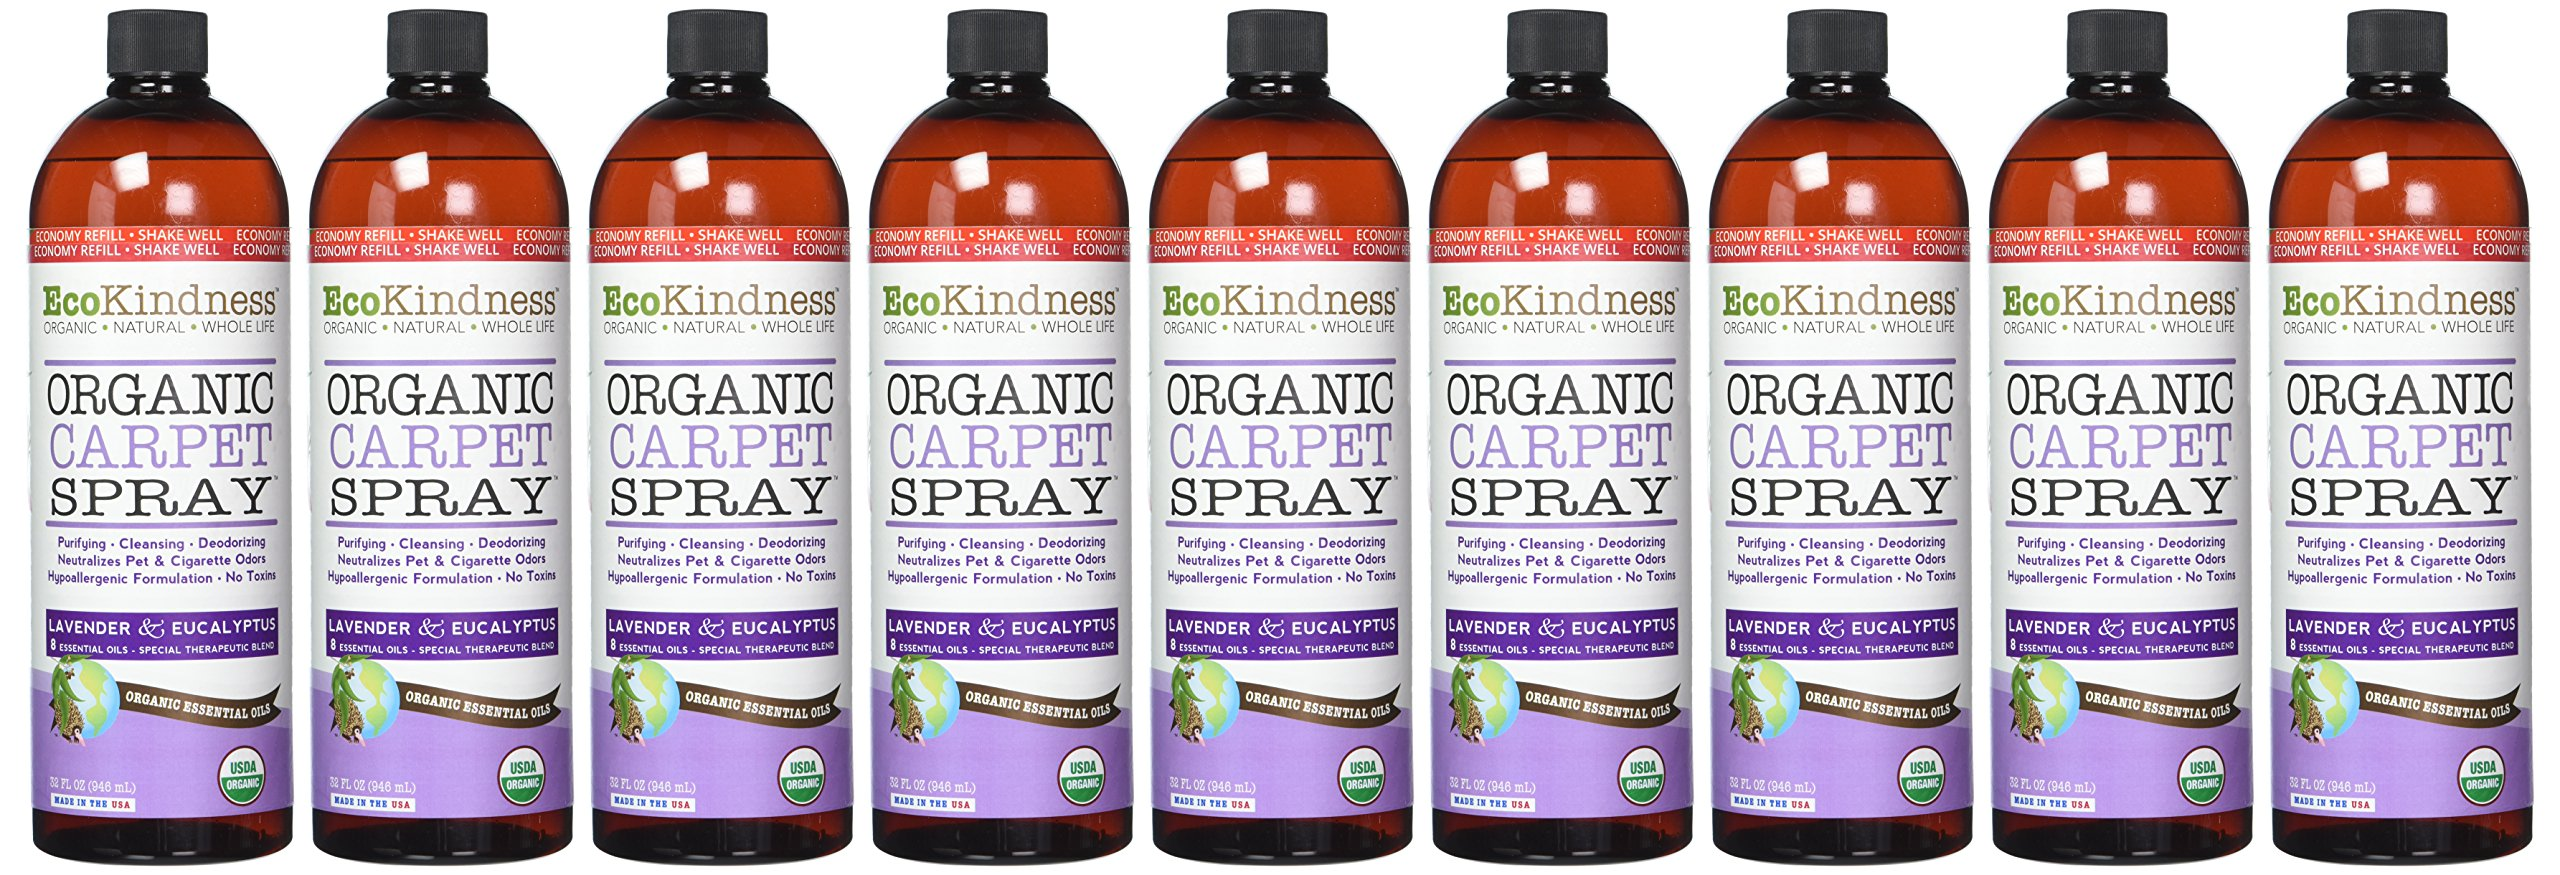 EcoKindness Organic Economy Refill Evening Song of Violets Carpet Spray, 32 Fl Oz (Pack of 9)